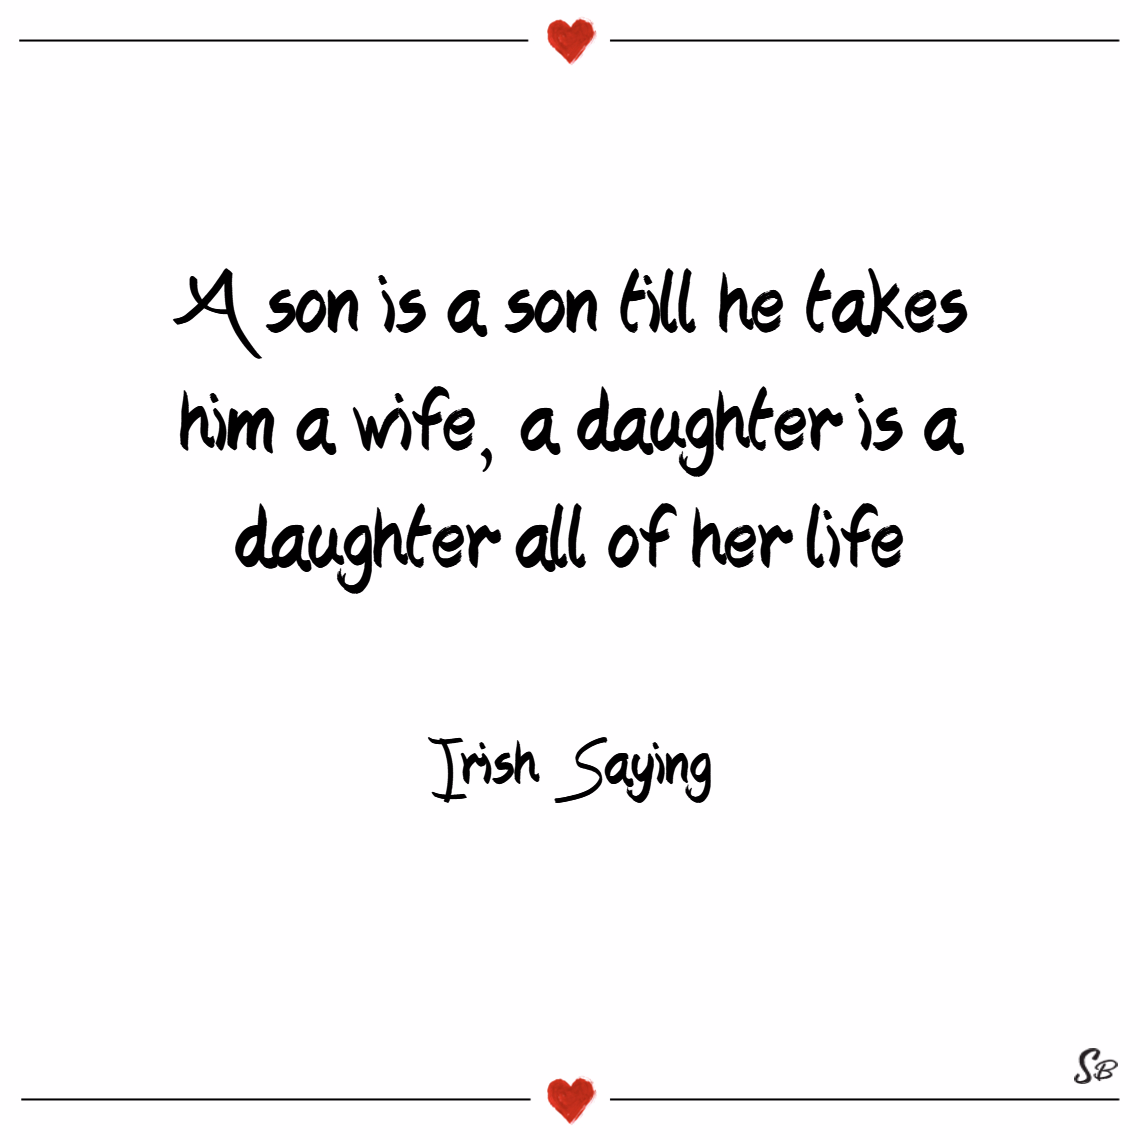 A son is a son till he takes him a wife, a daughter is a daughter all of her life. – irish saying